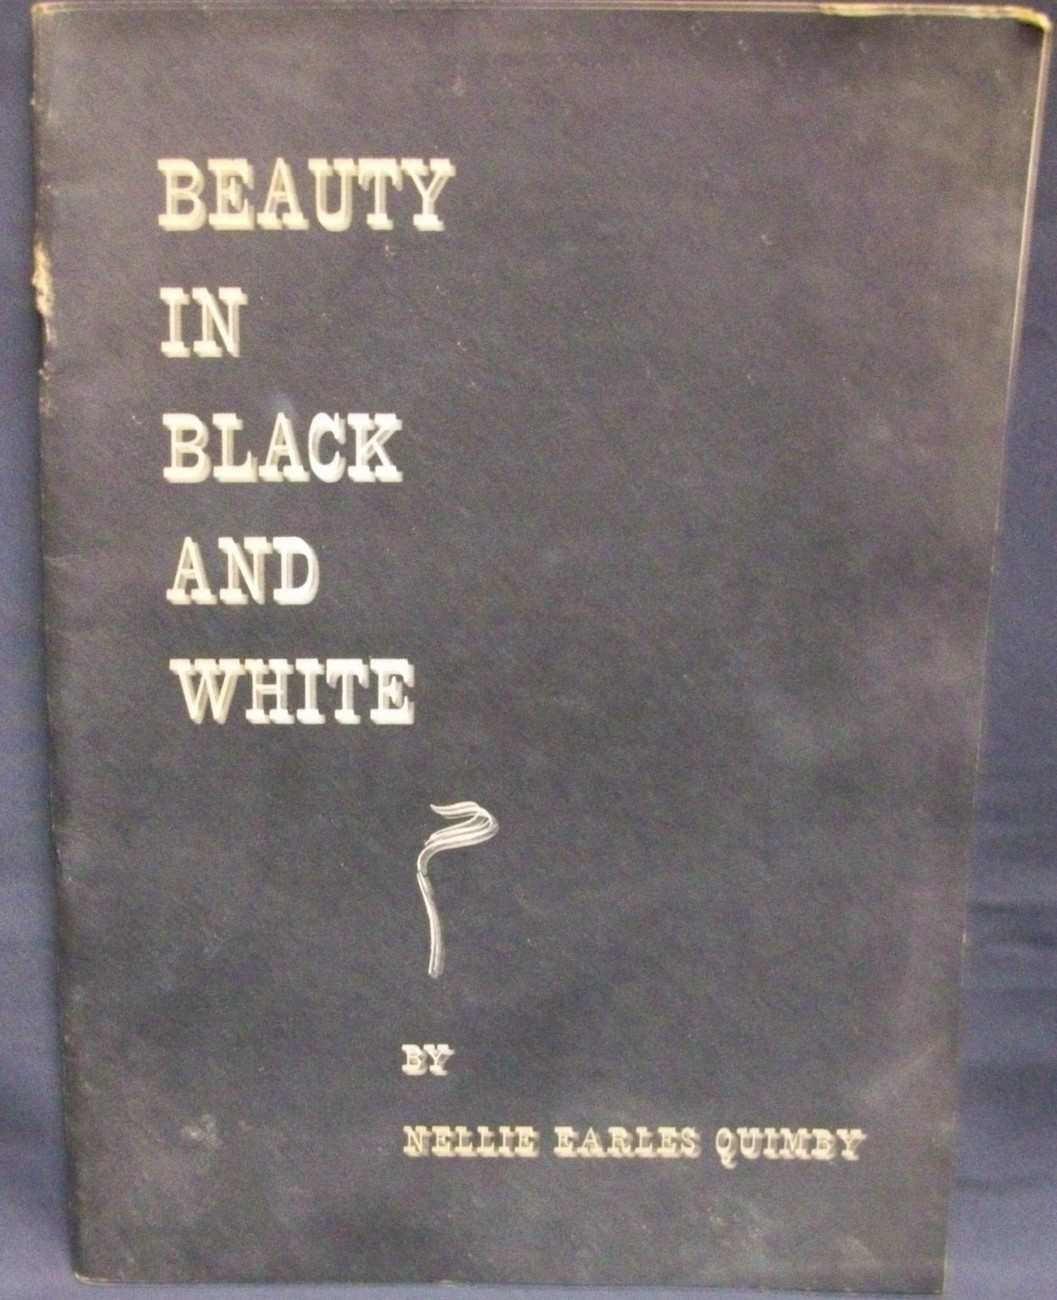 Primary image for Beauty in Black and White by Quimby Nellie